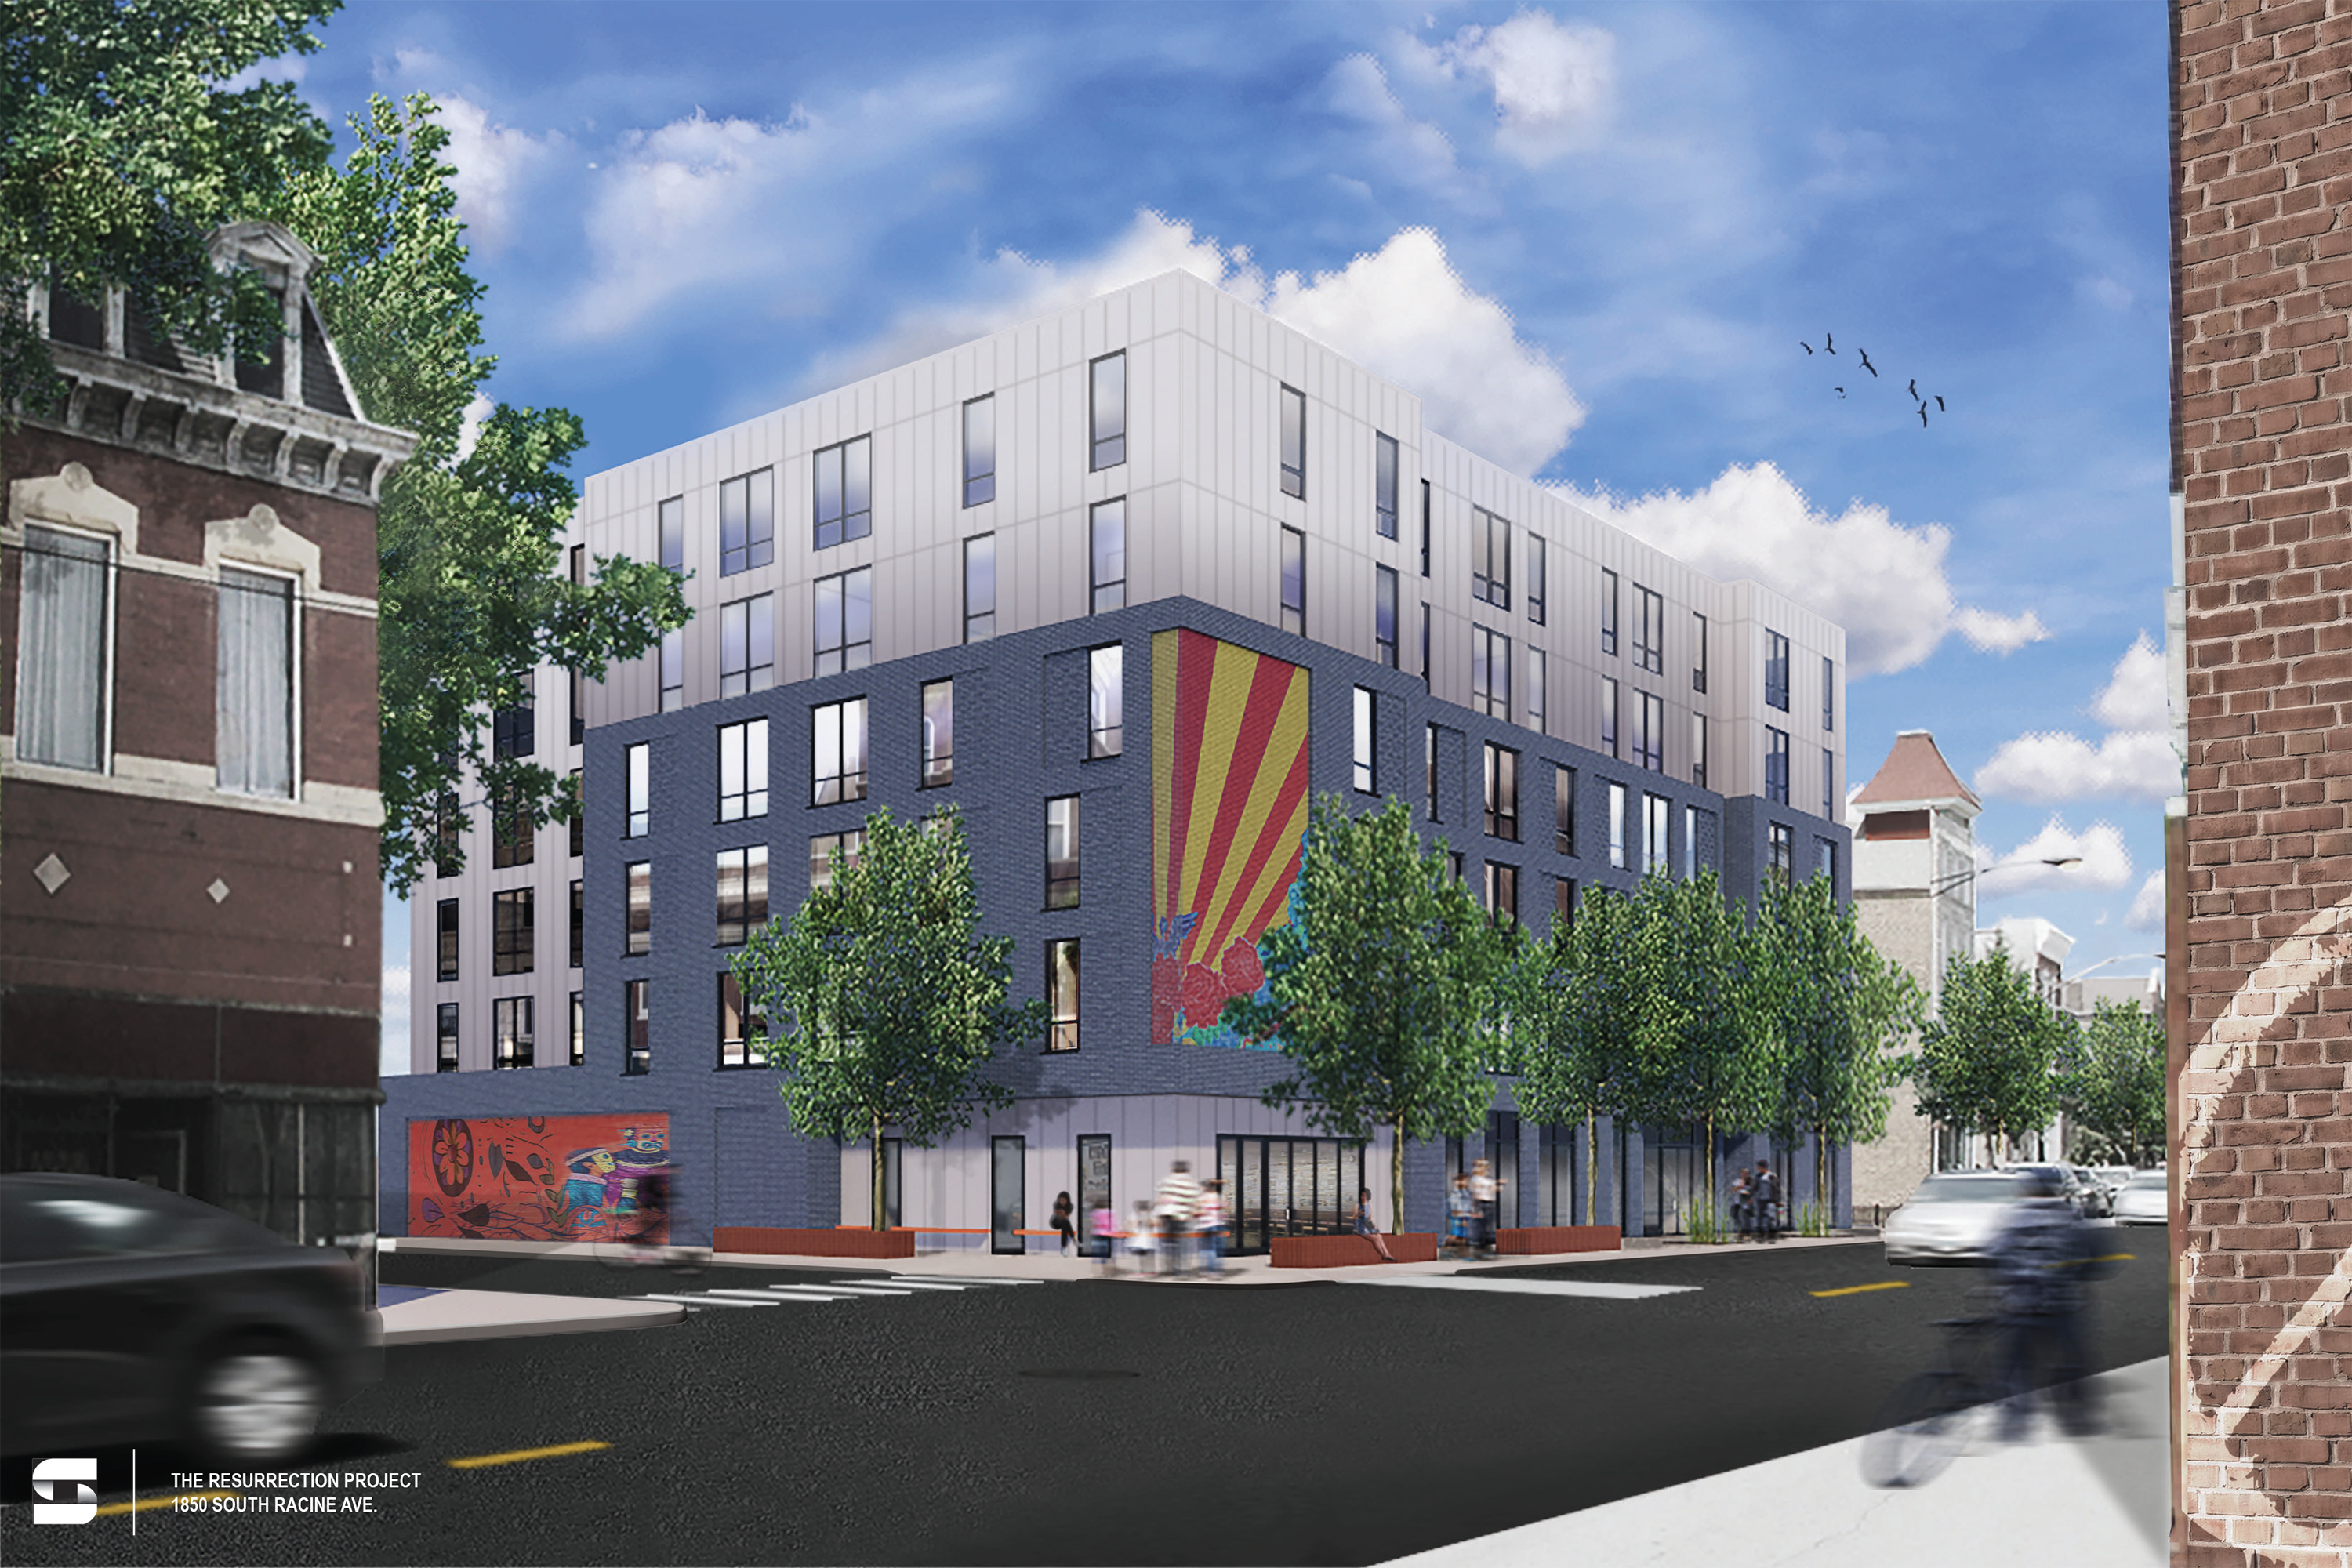 Modular affordable apartments pitched for vacant Pilsen corner